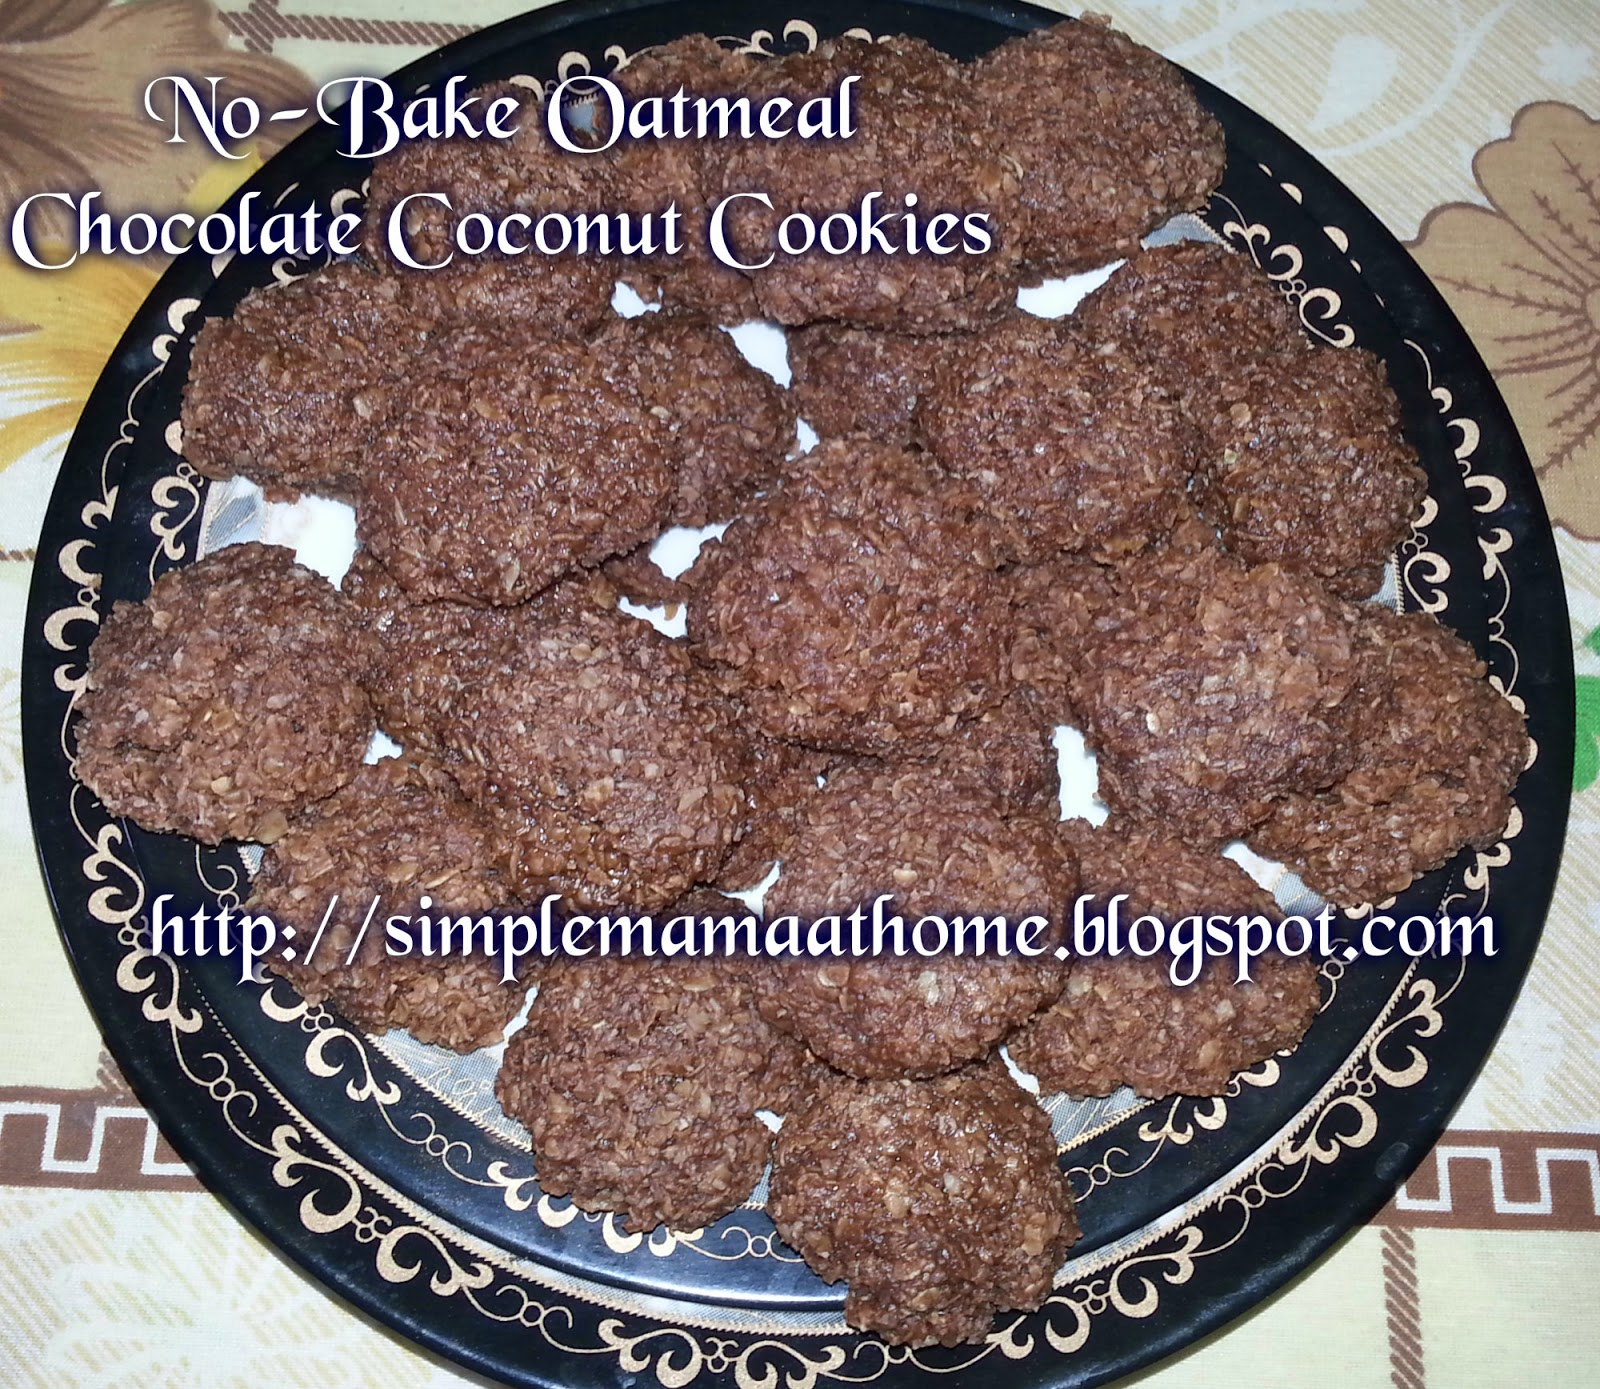 No-Bake Oatmeal Chocolate Coconut Cookies